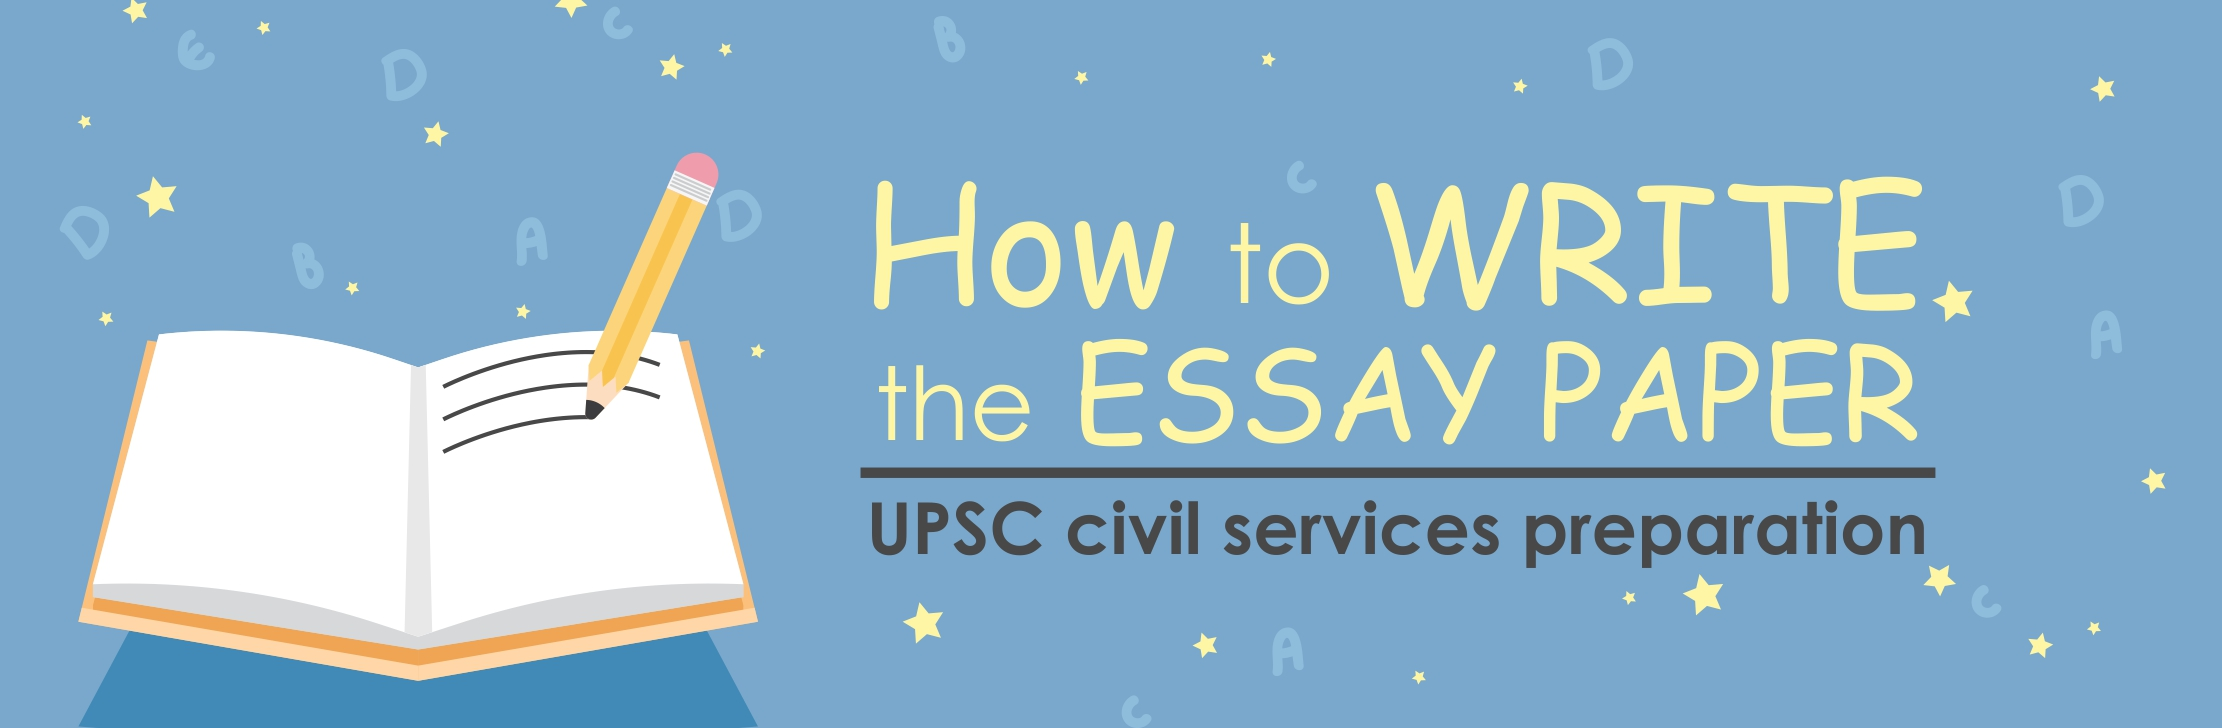 How to write the essay paper UPSC civil services preparation